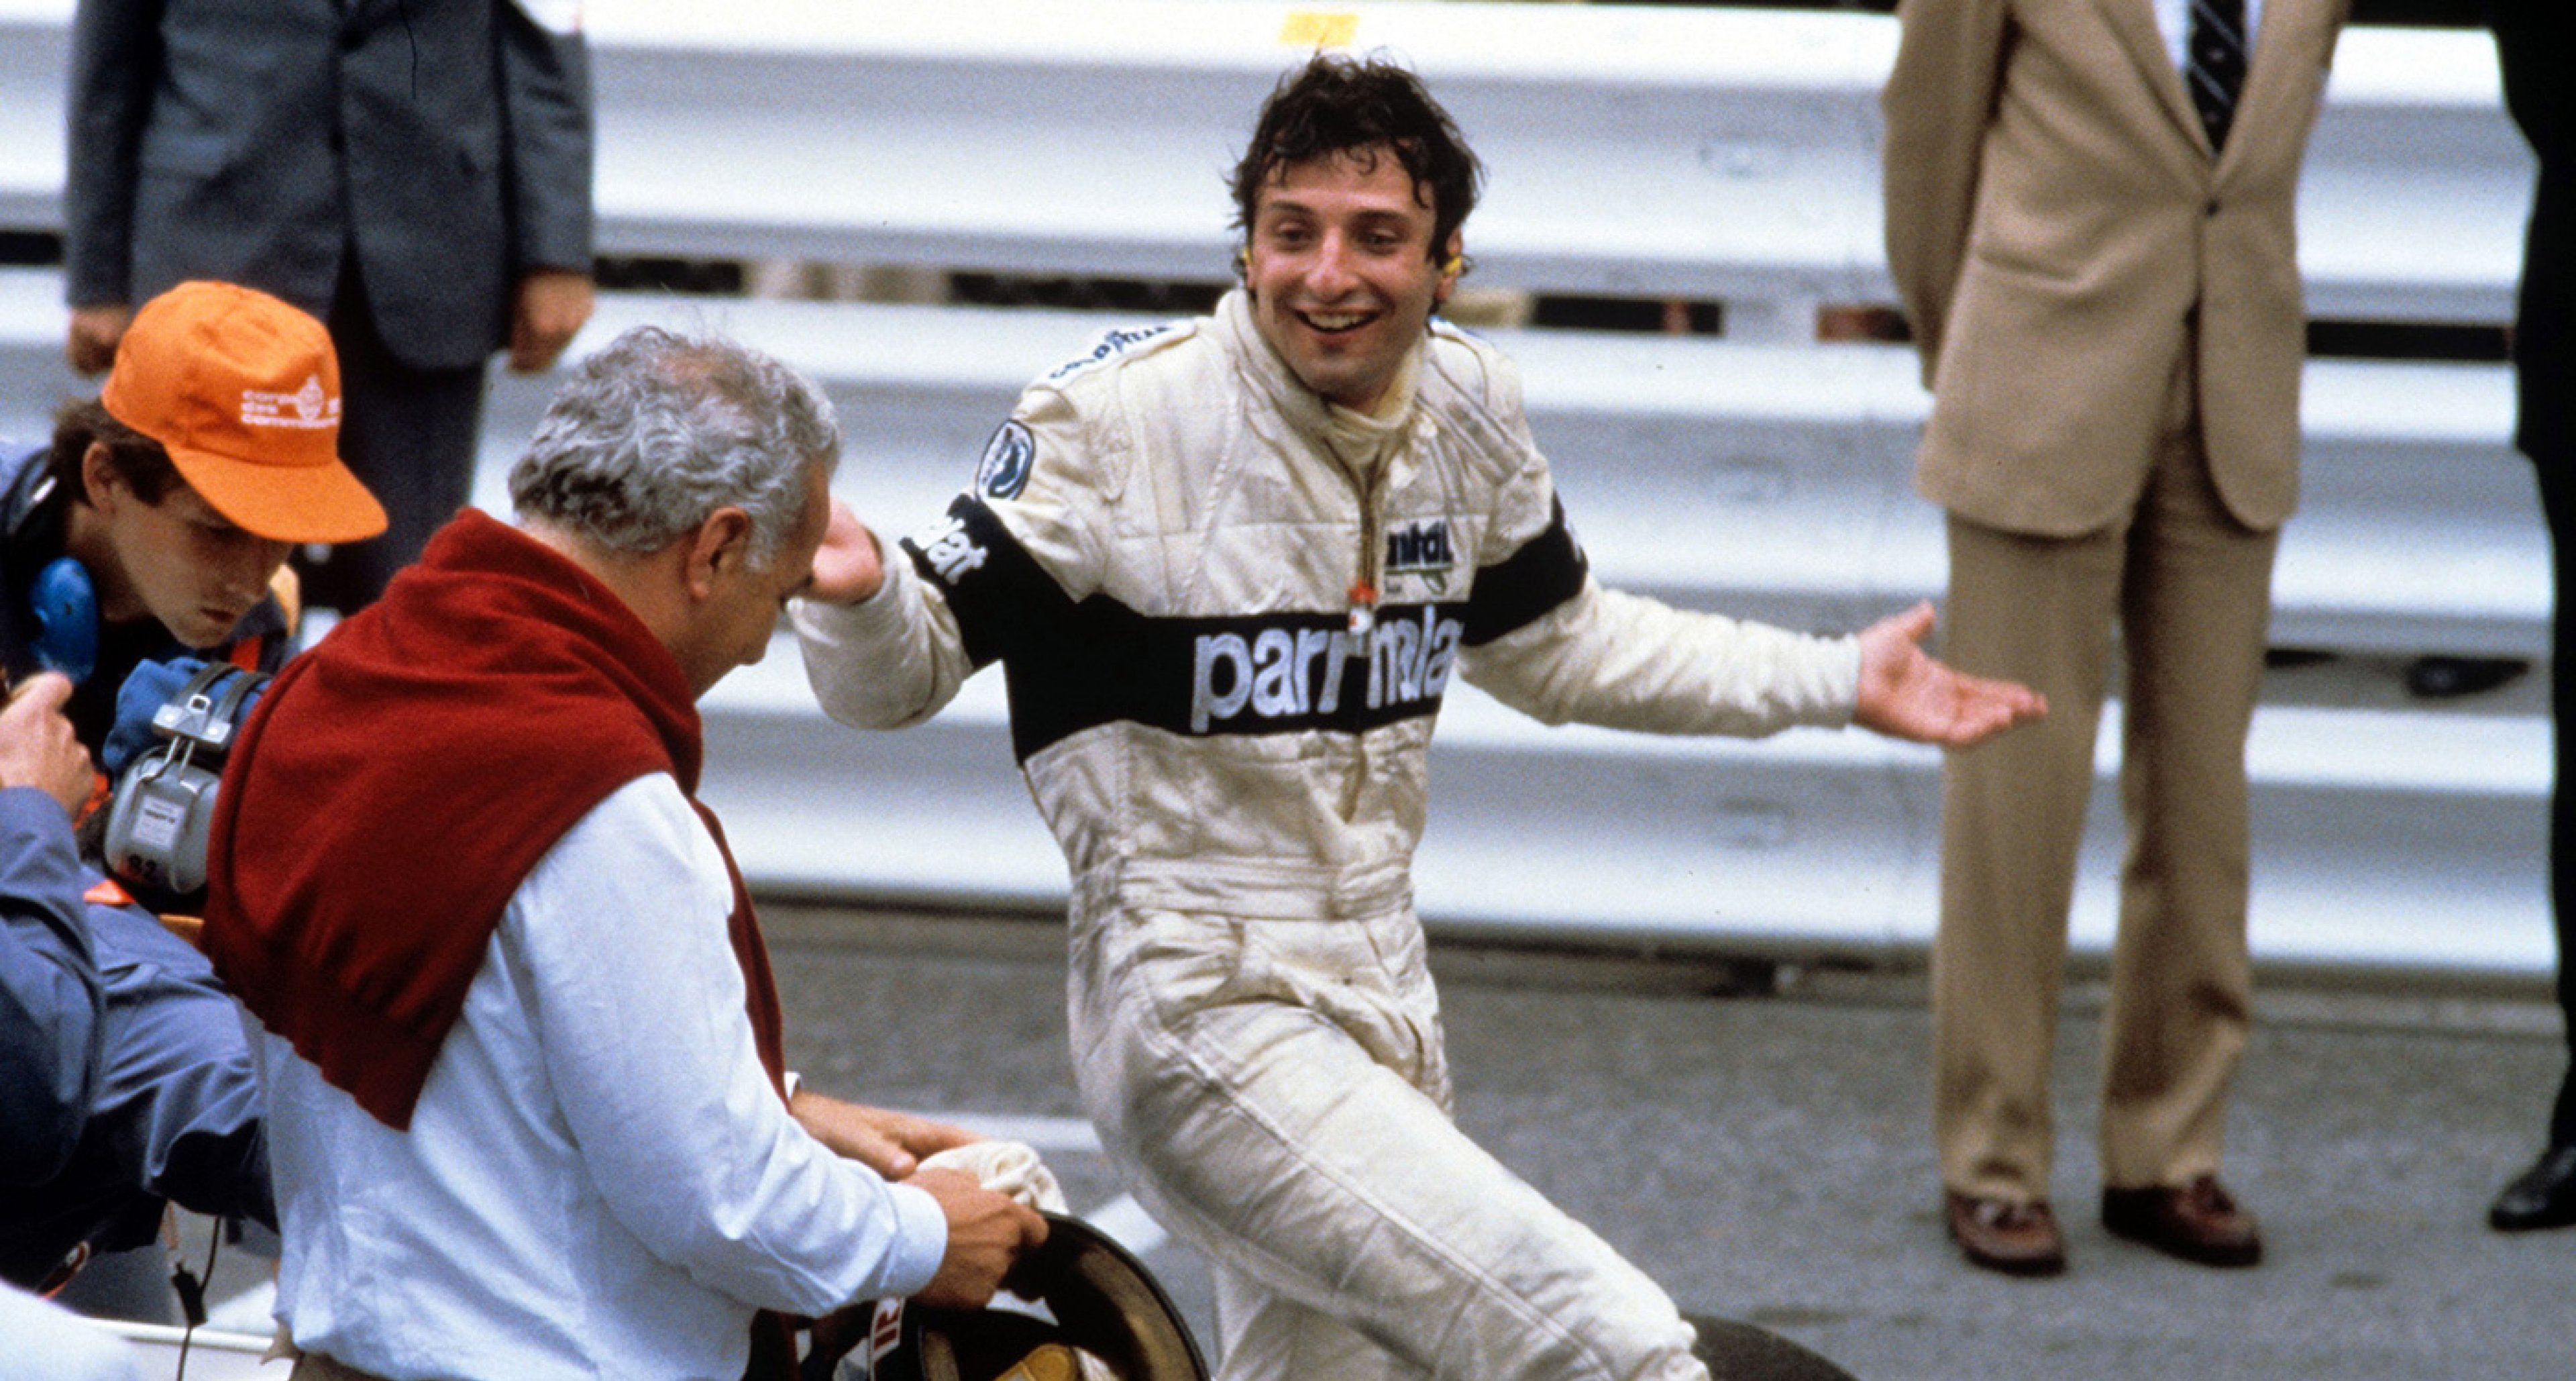 A confused Patrese learns of his win at an unbelievable Monaco GP in 1982